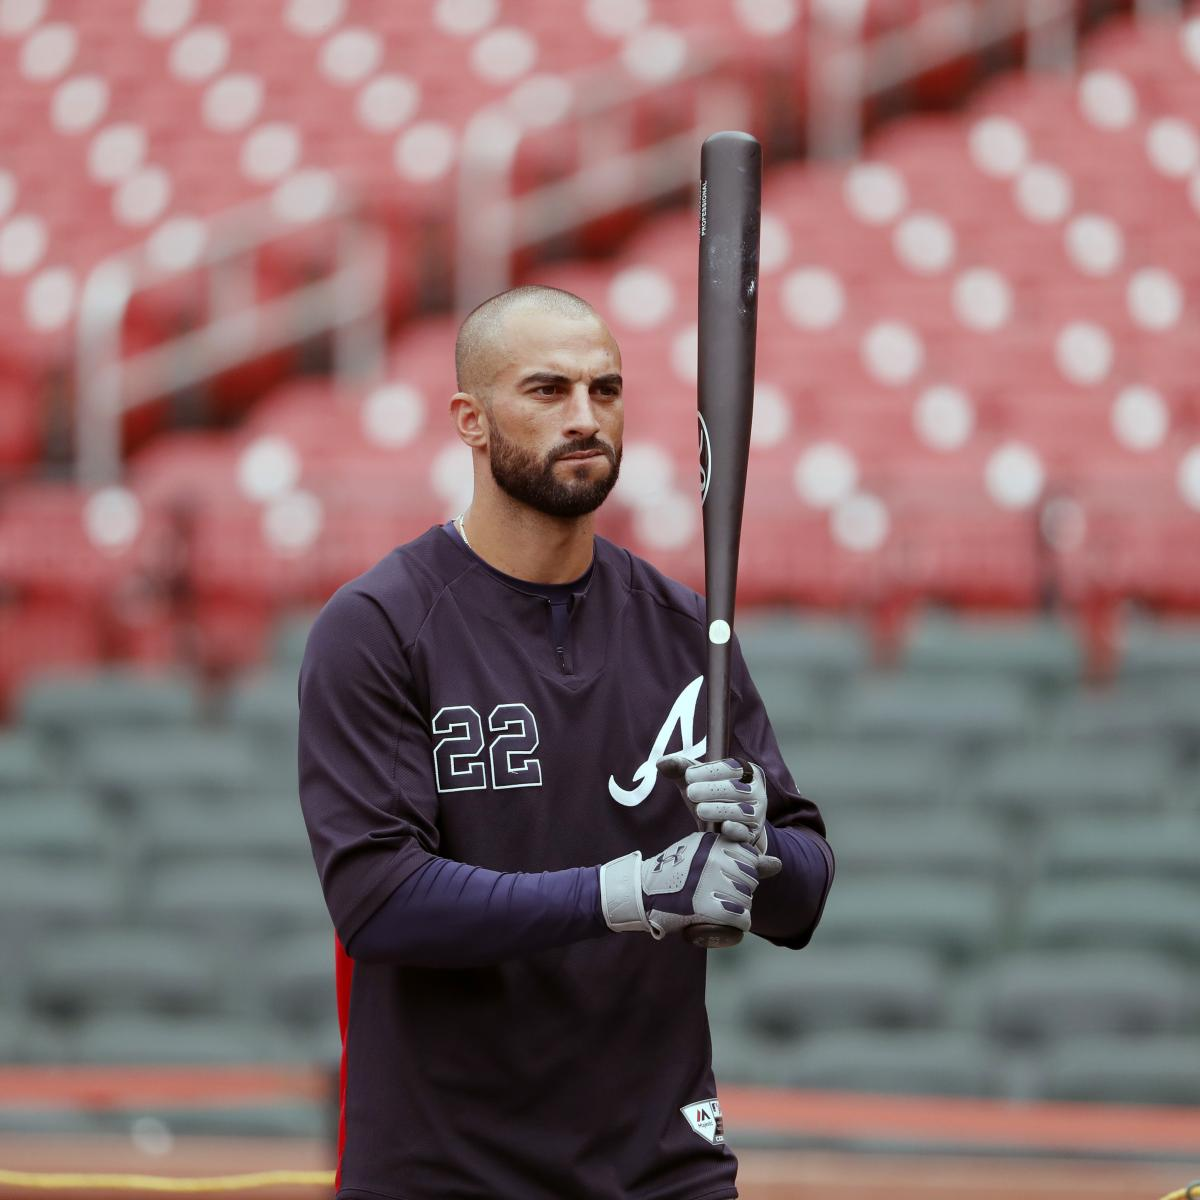 Nick Markakis on Astros Scandal: 'Every Single Guy over There Needs a Beating'